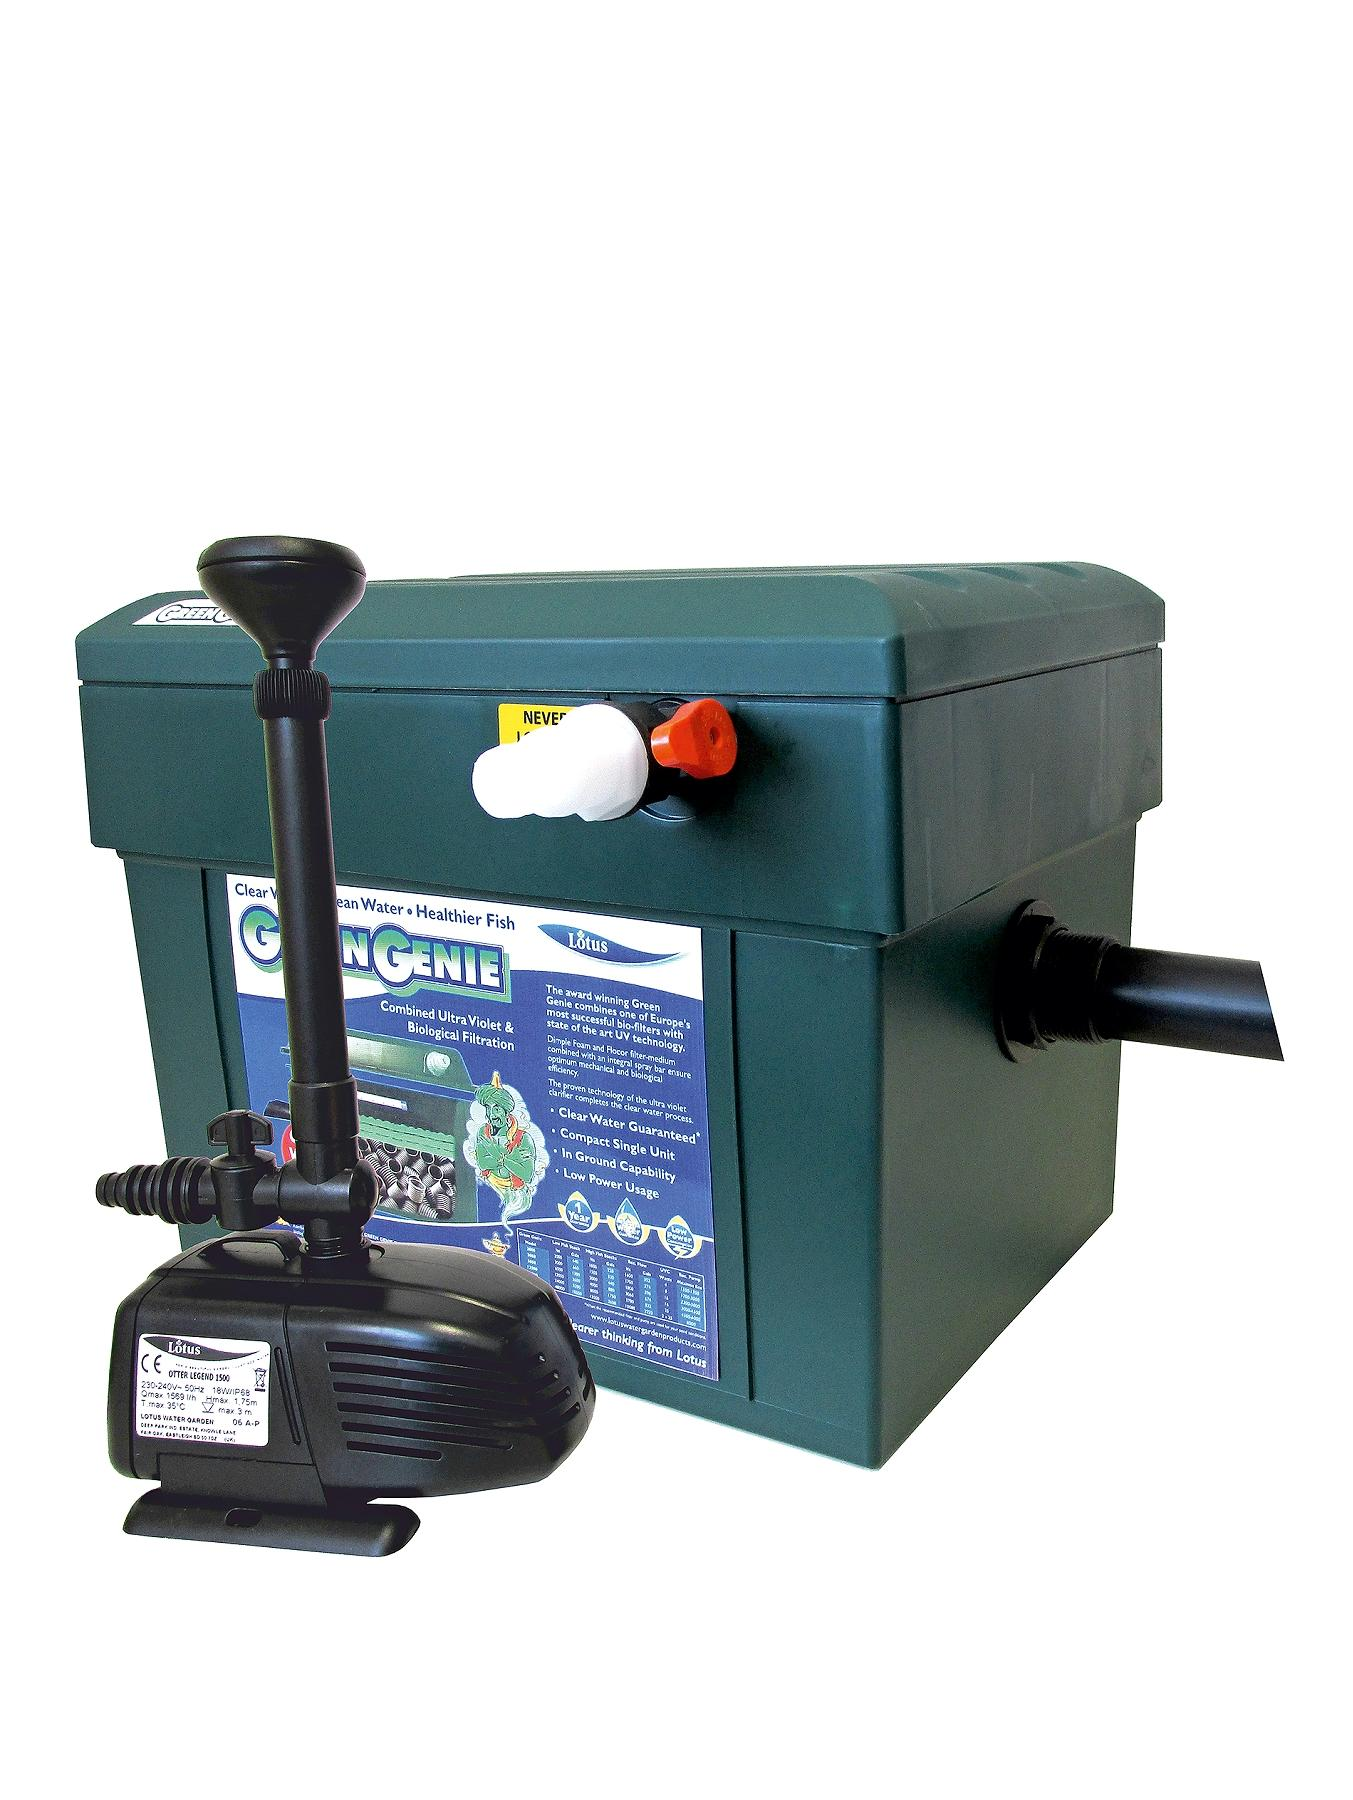 Lotus Green Genie Triple Kit 3000 Including an Otter Legend 2000 Pond Pump